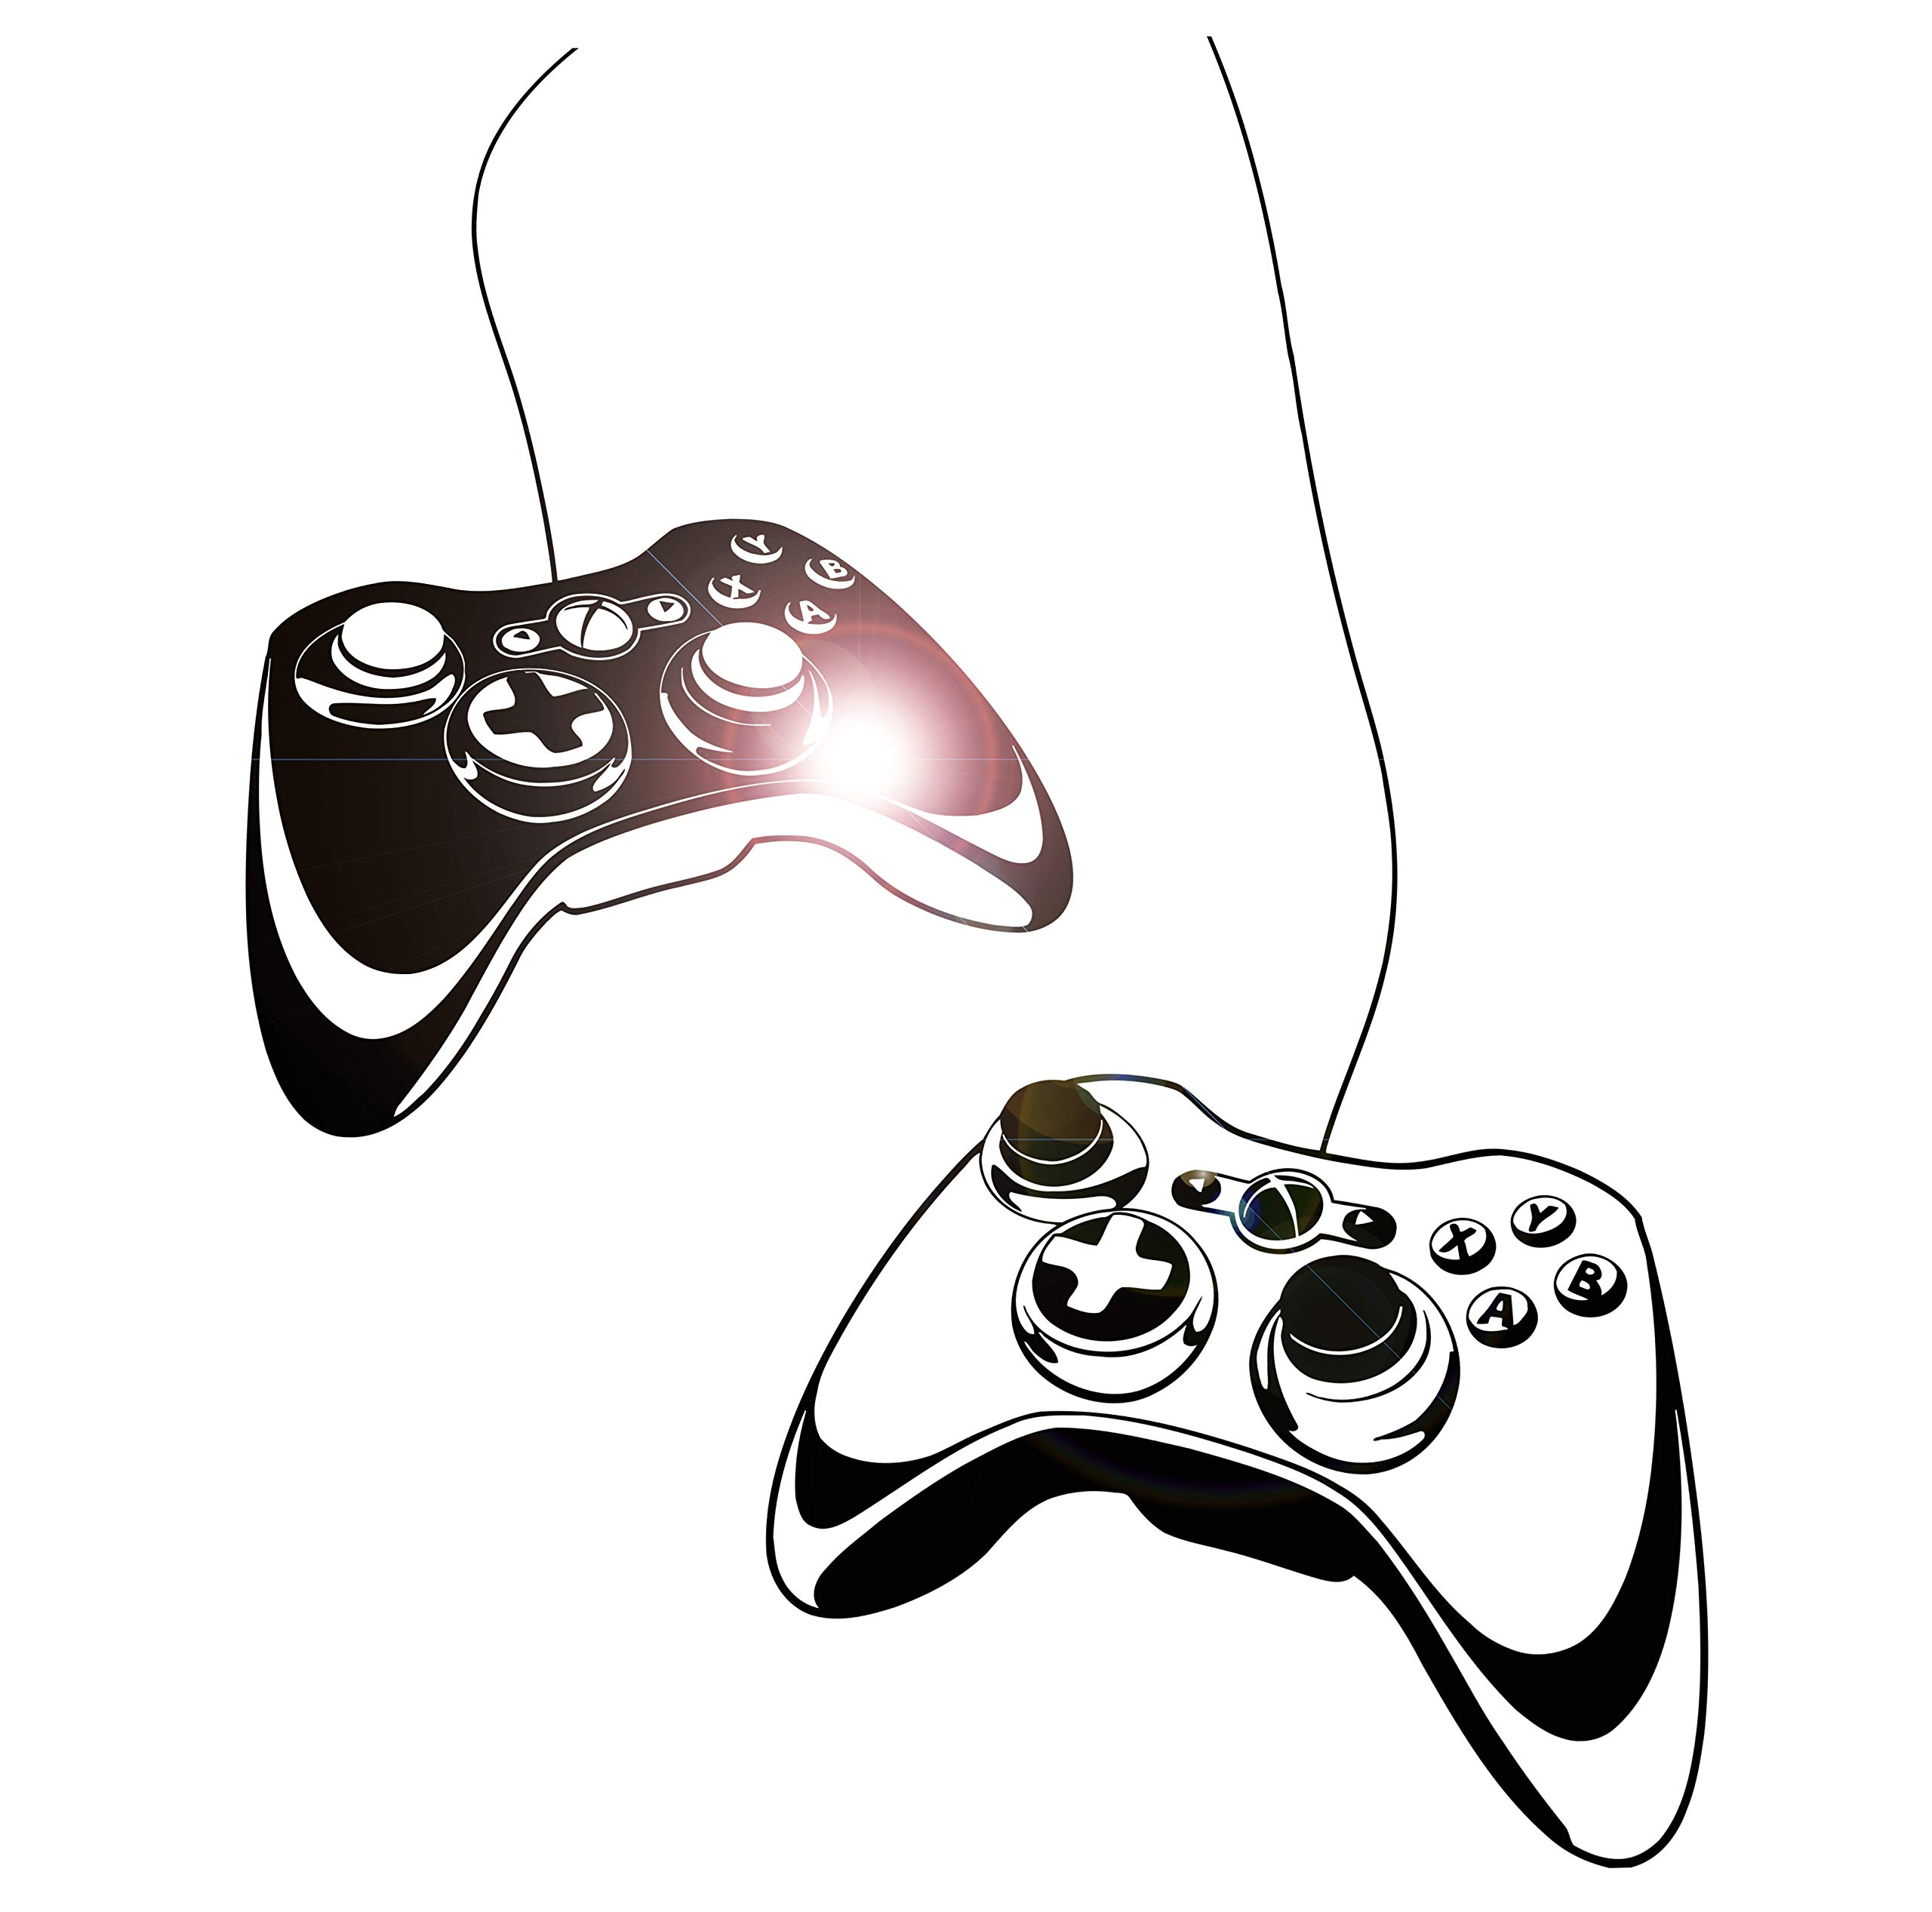 Wall Decal Gamer Gaming Joystick Vinyl Art Kids Room Large Decor z4909 (28 in X 43 in) by Wallstickers4you